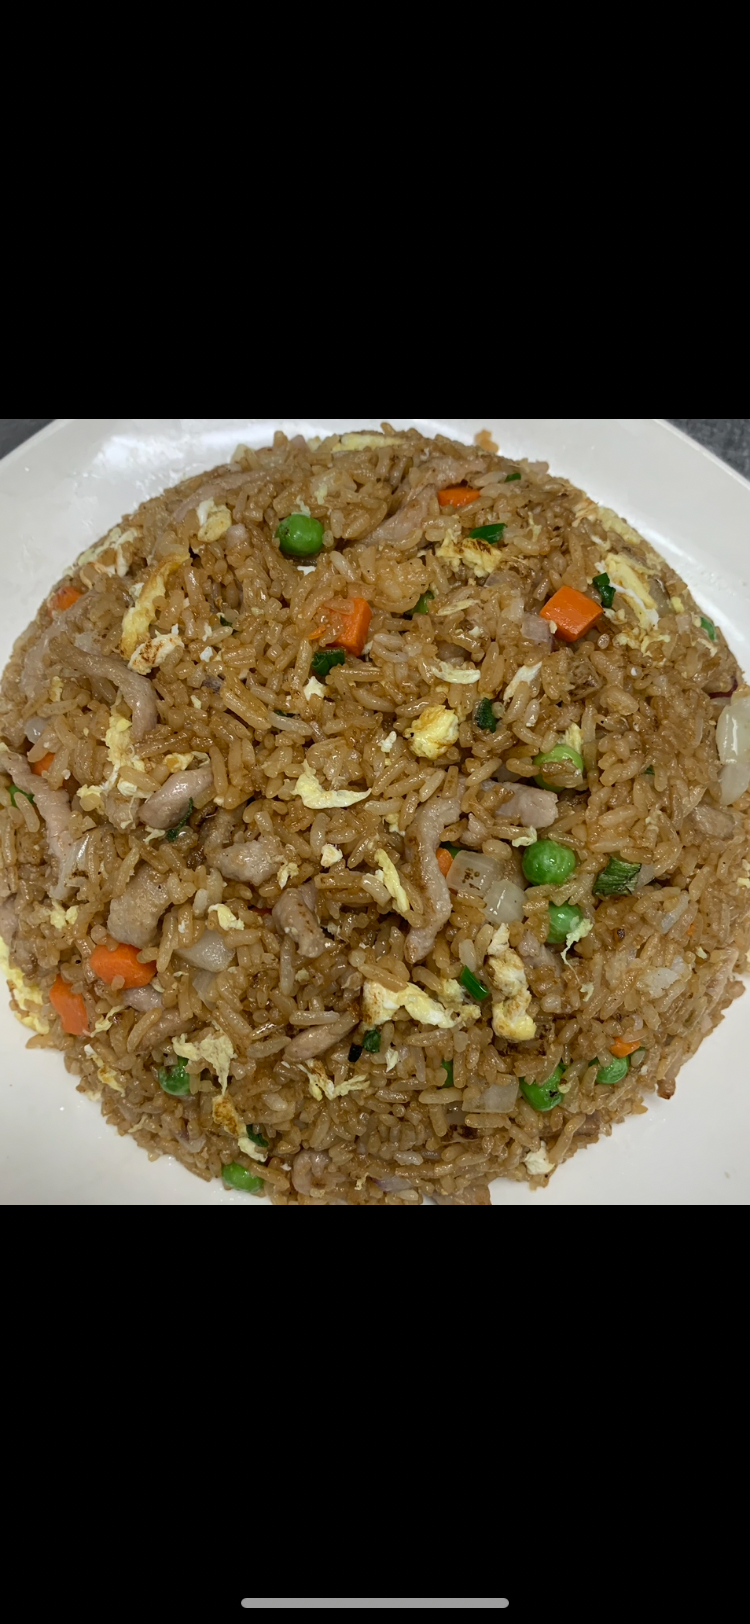 Shredded Pork Fried Rice 猪肉丝炒饭 Image